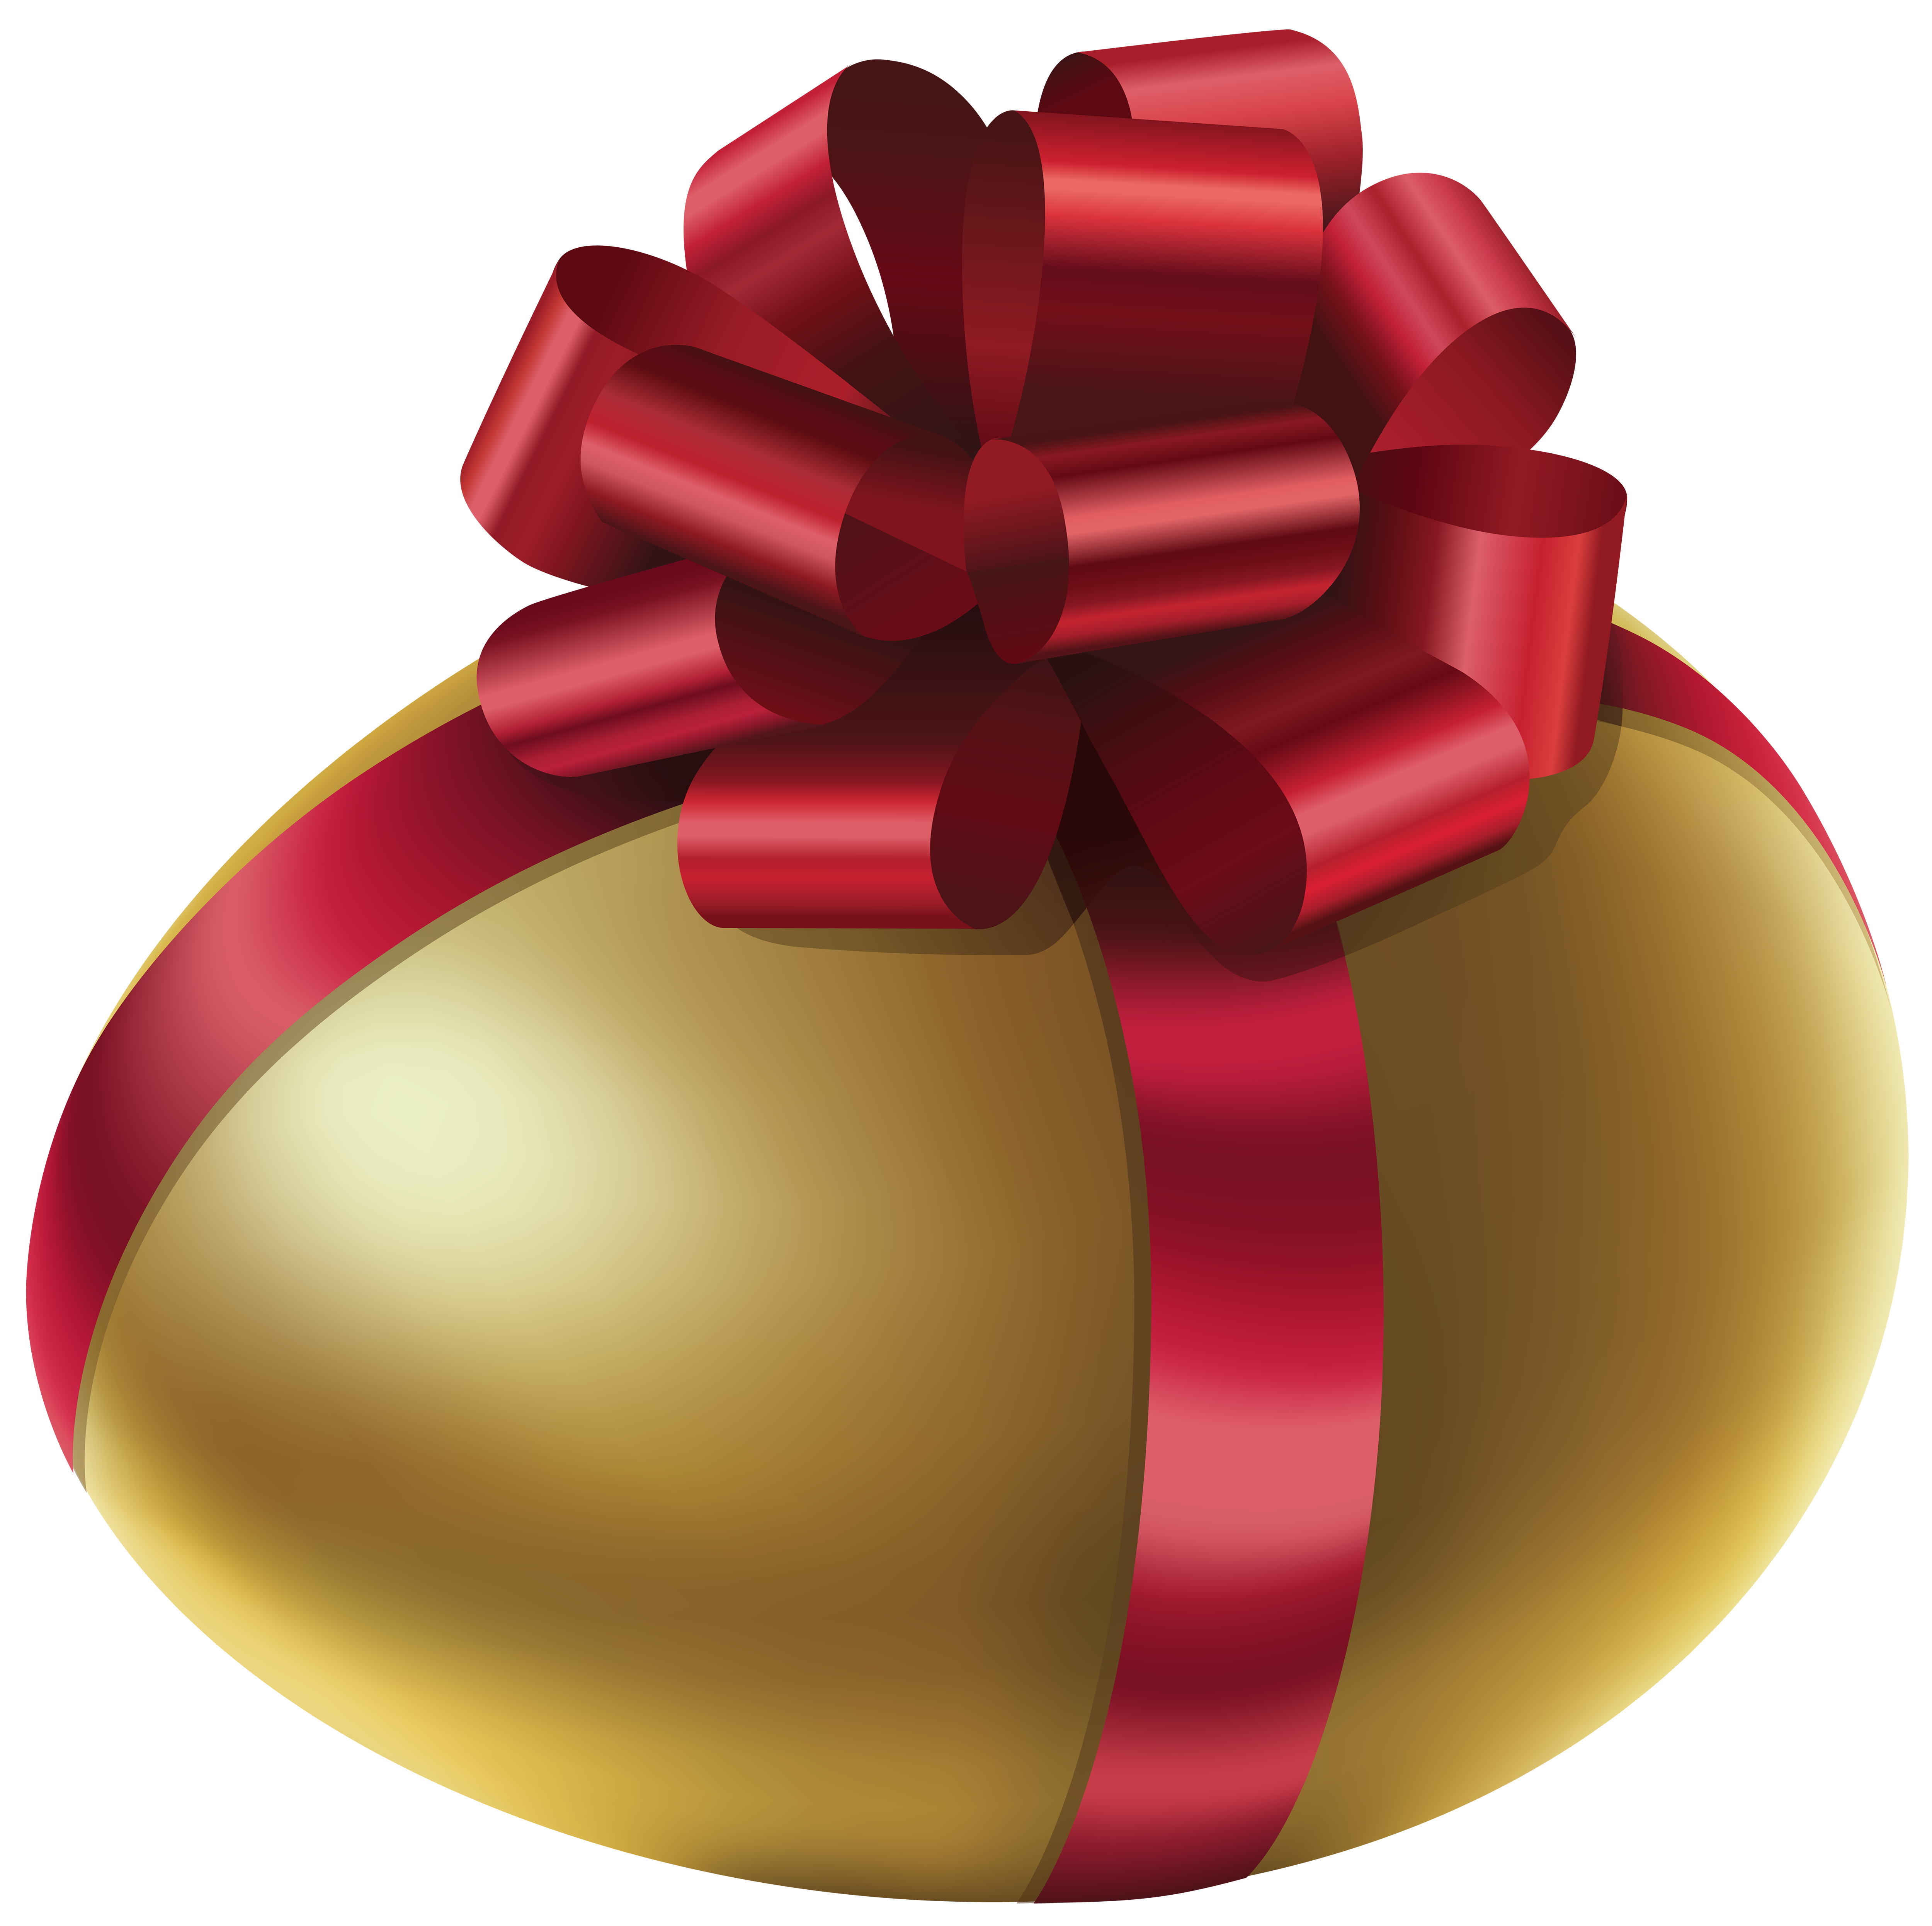 Easter Golden Egg with Red Bow PNG Clip Art Image.